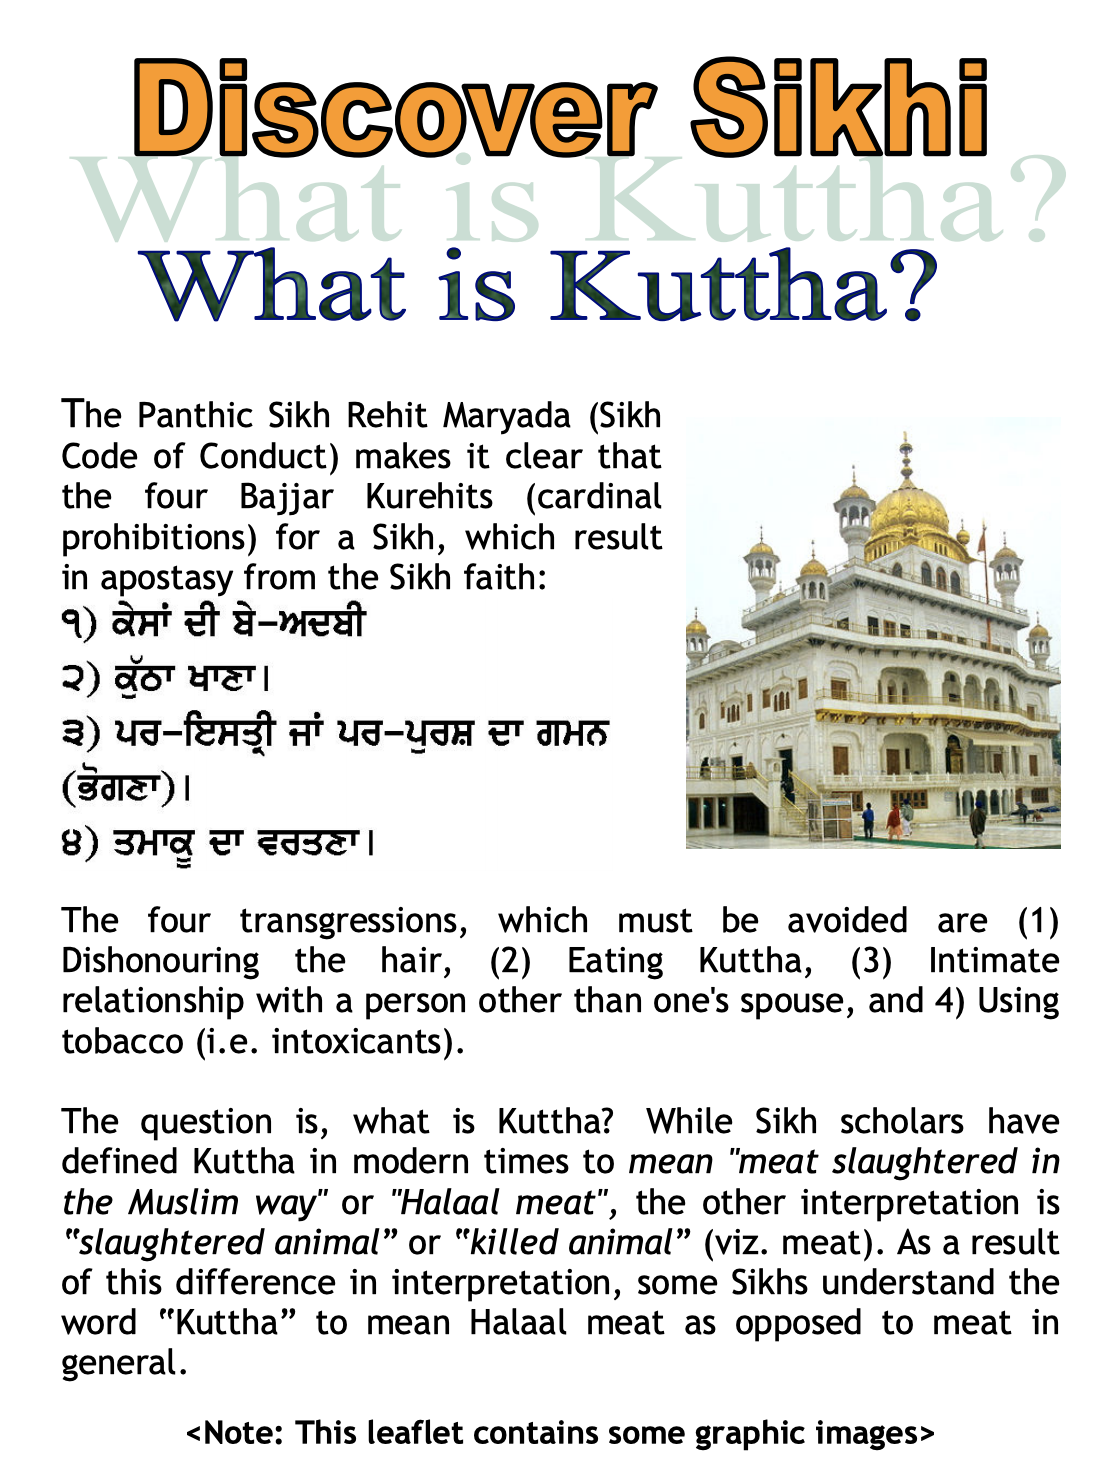 What is Kuttha?